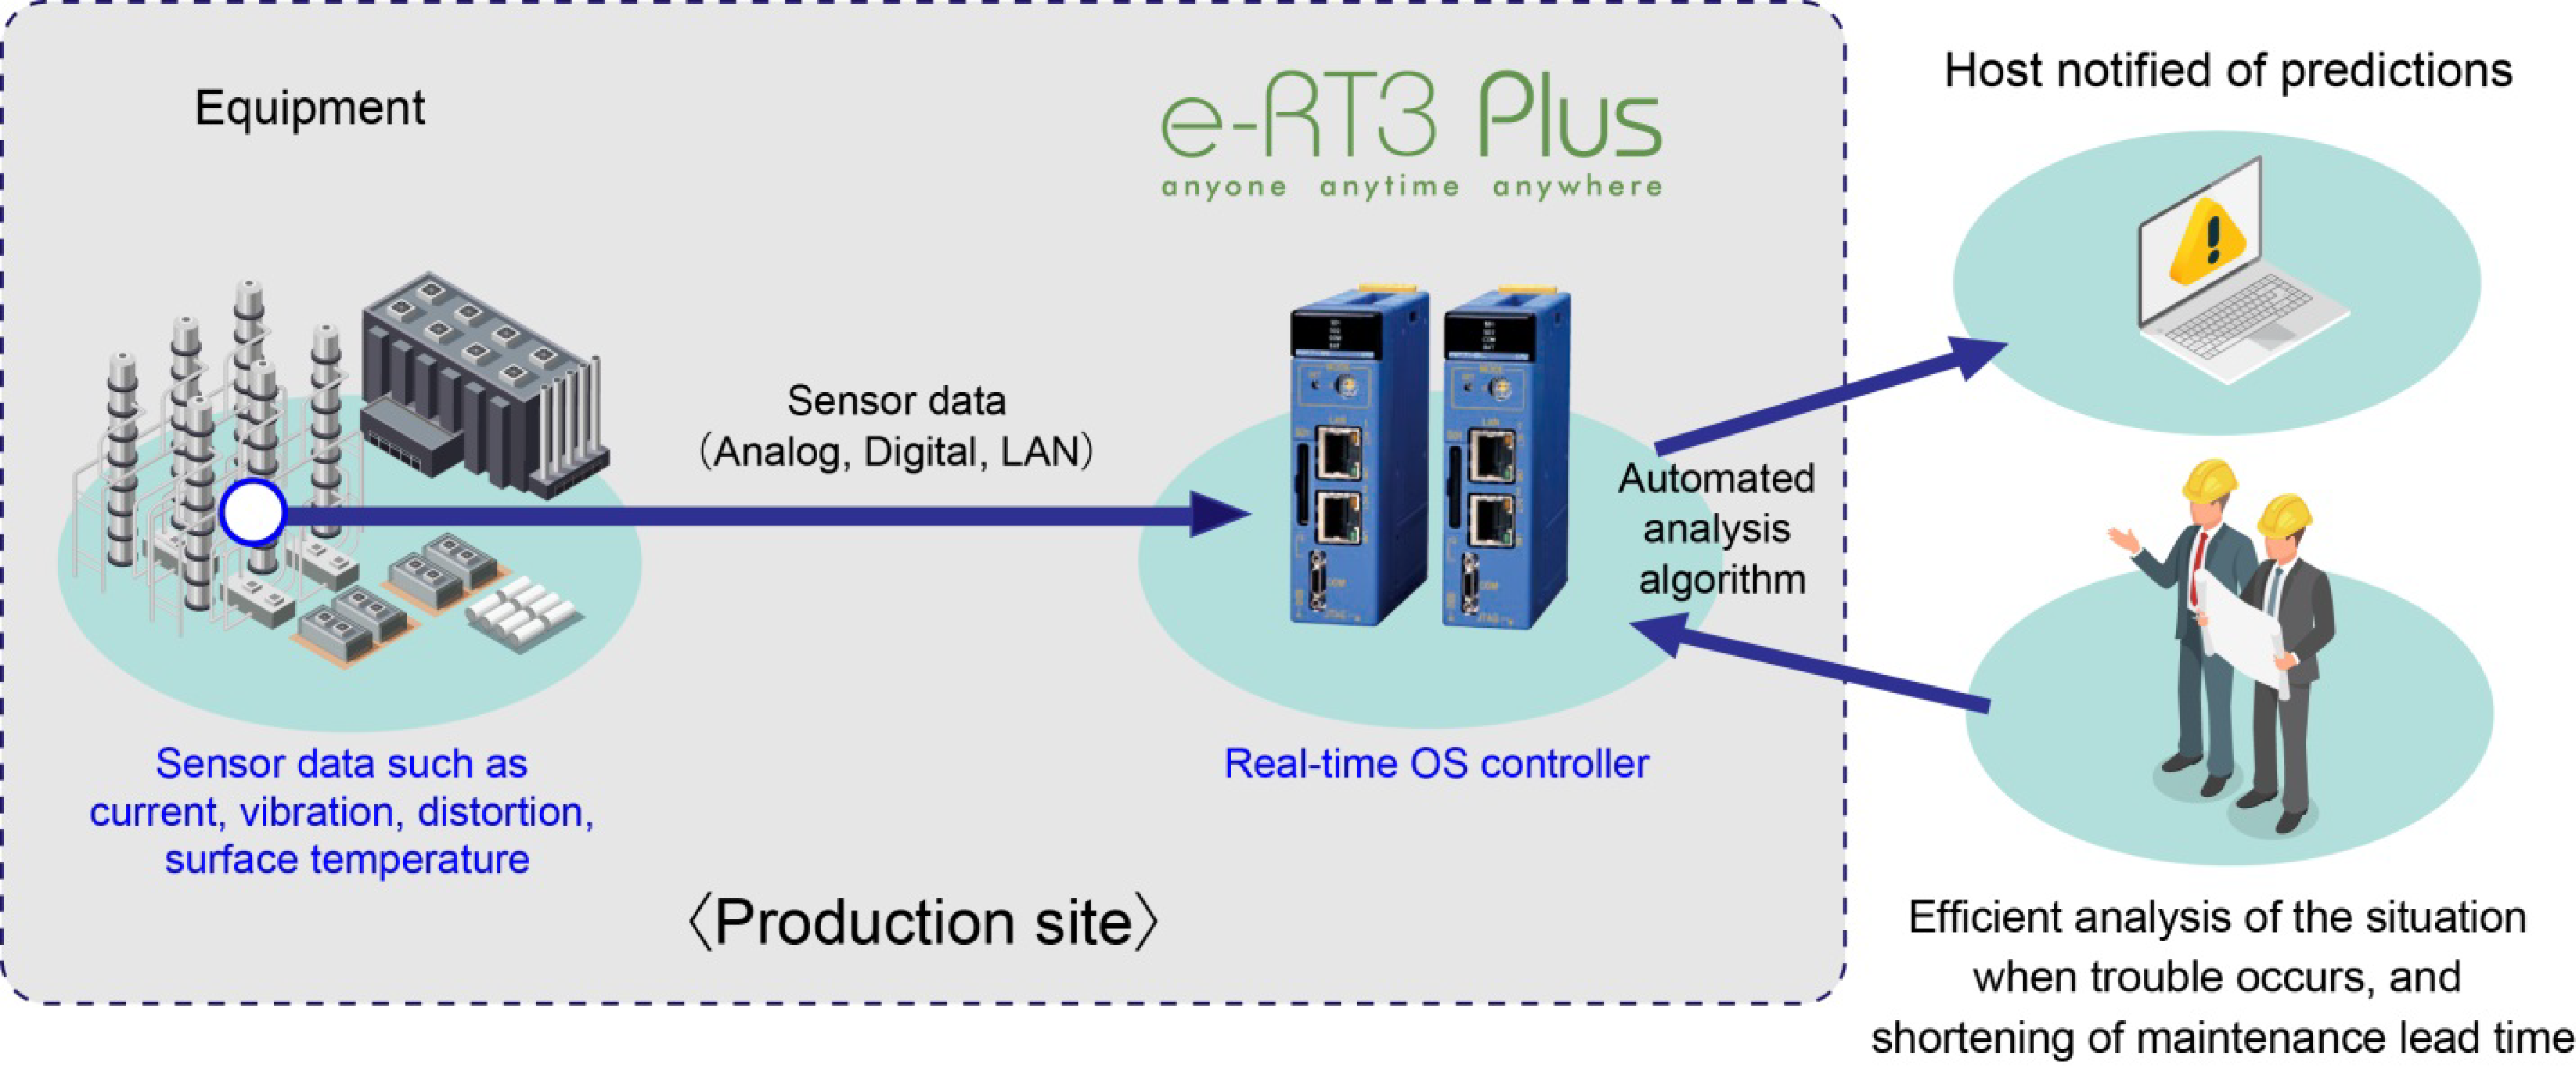 Automated anomaly detection using e-RT3 Plus